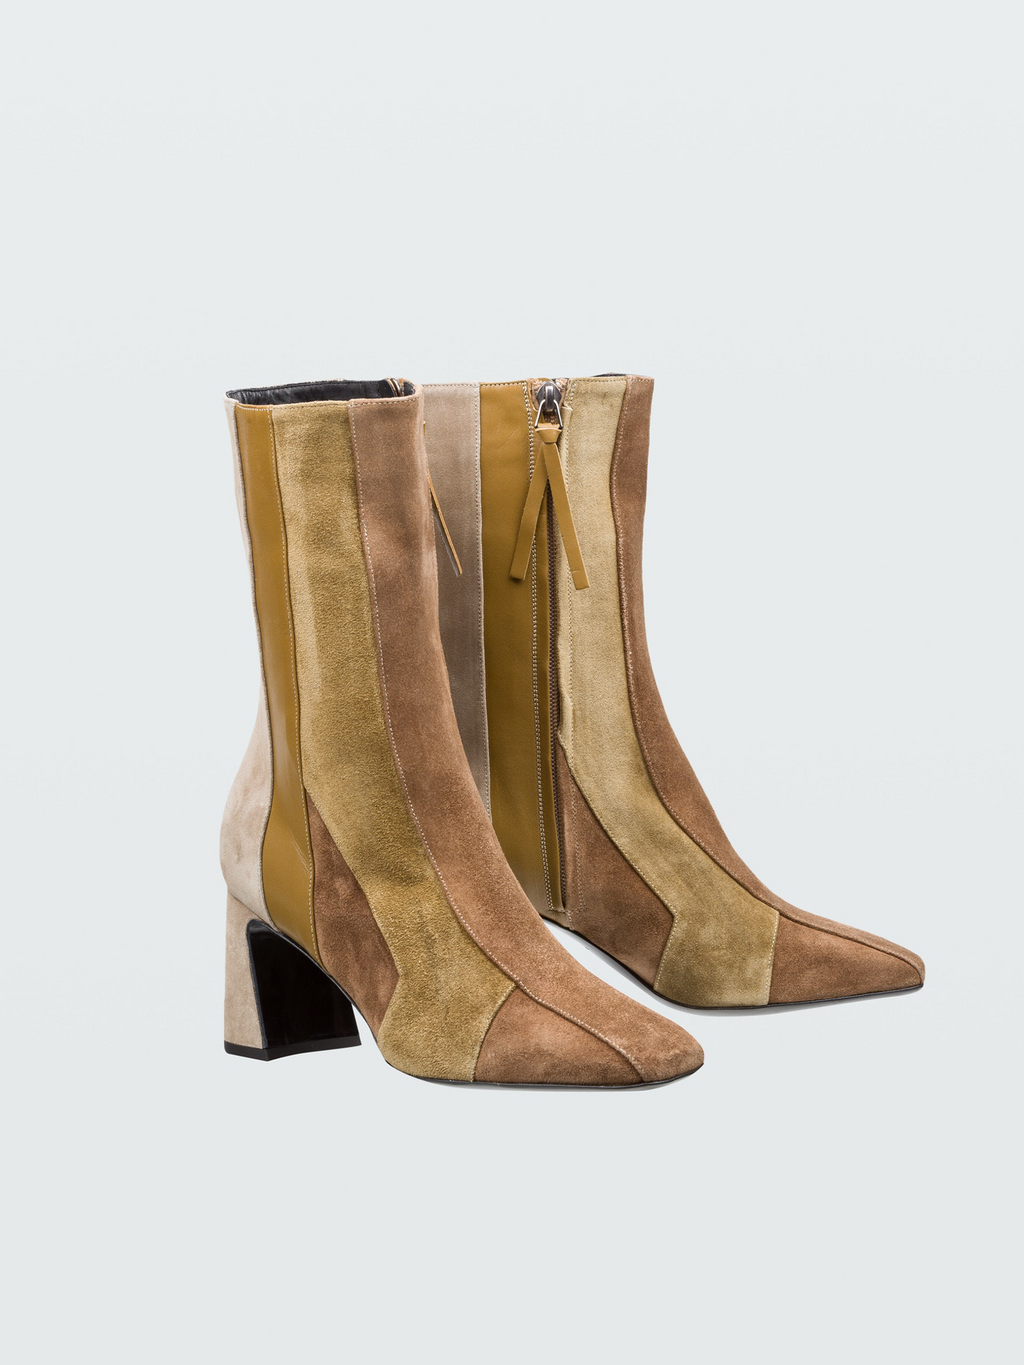 Dorothee Schumacher Patched Perfection Boot